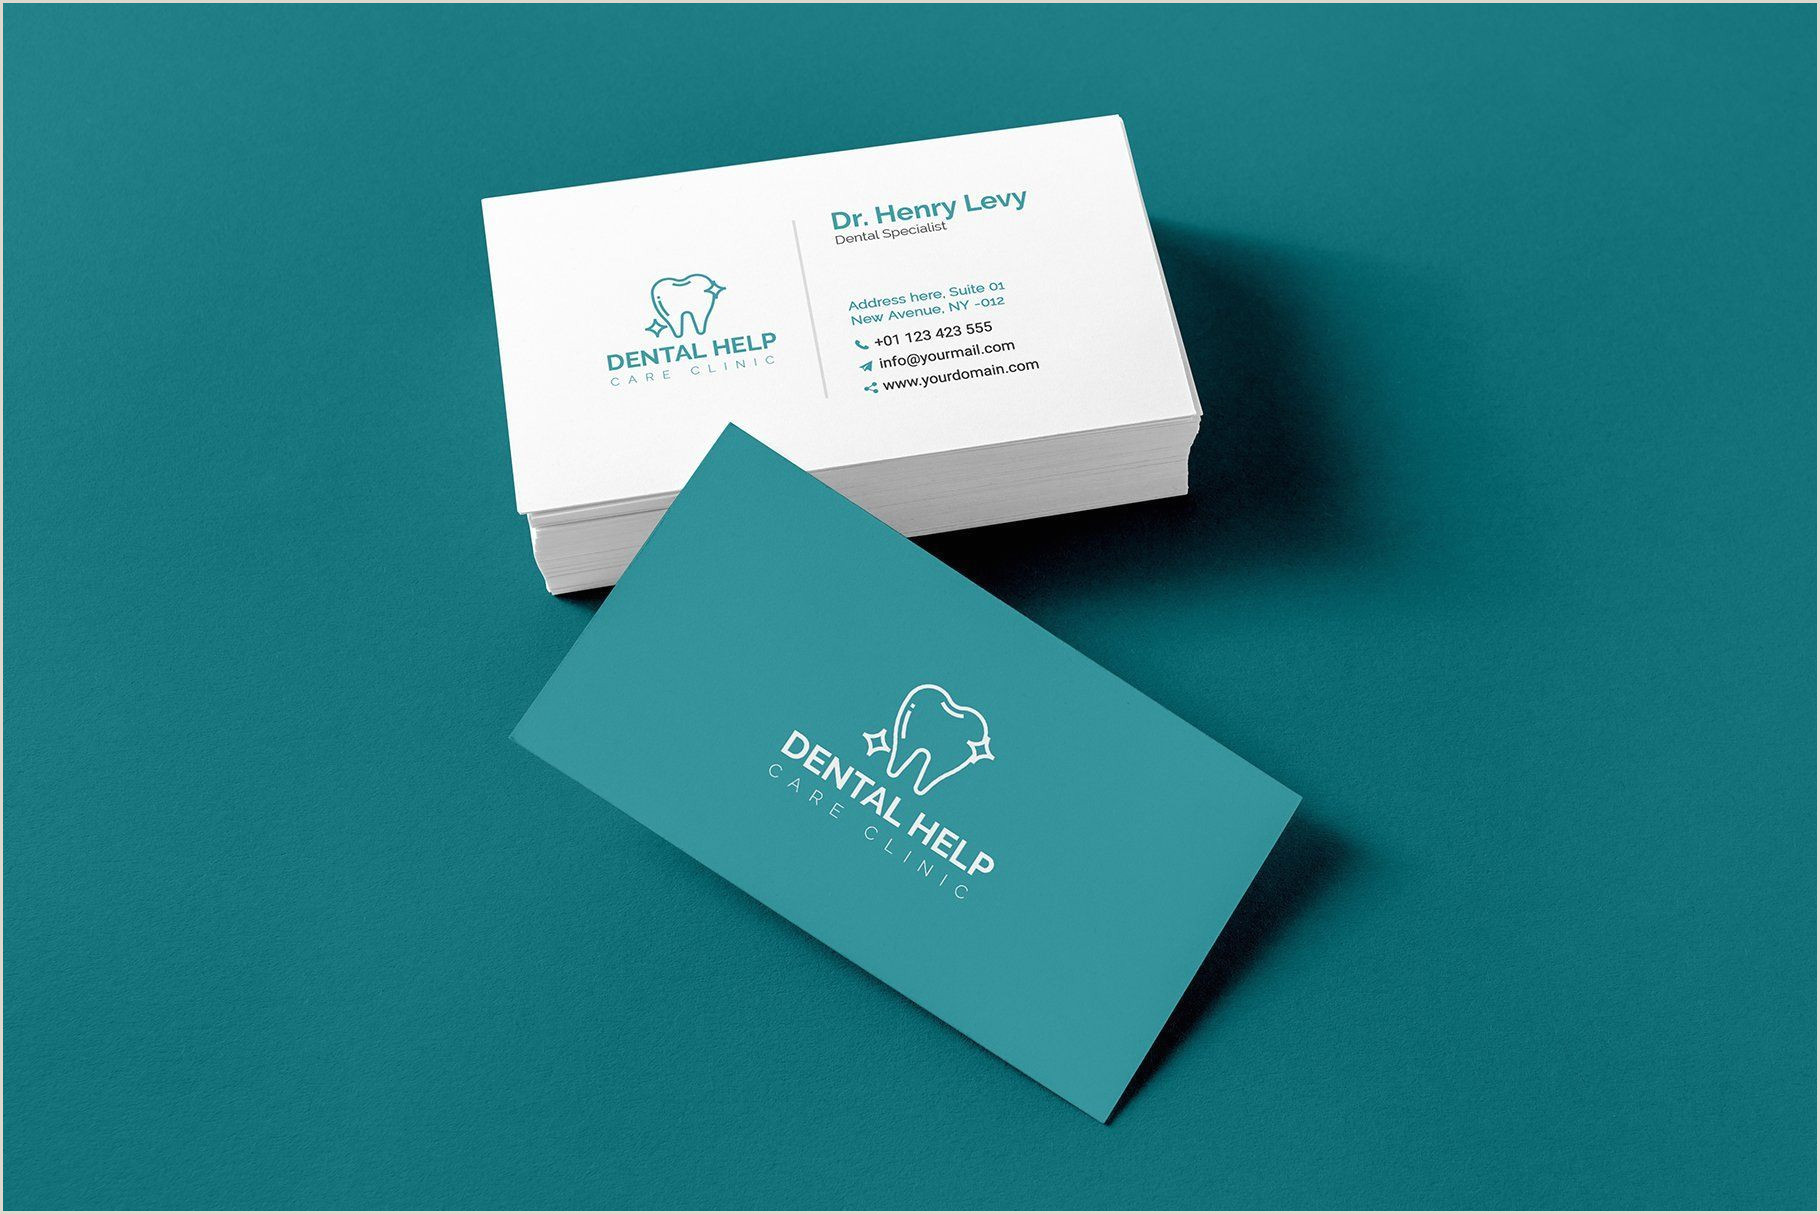 2020 Best Business Cards Designs Dentist Business Card Templates In 2020